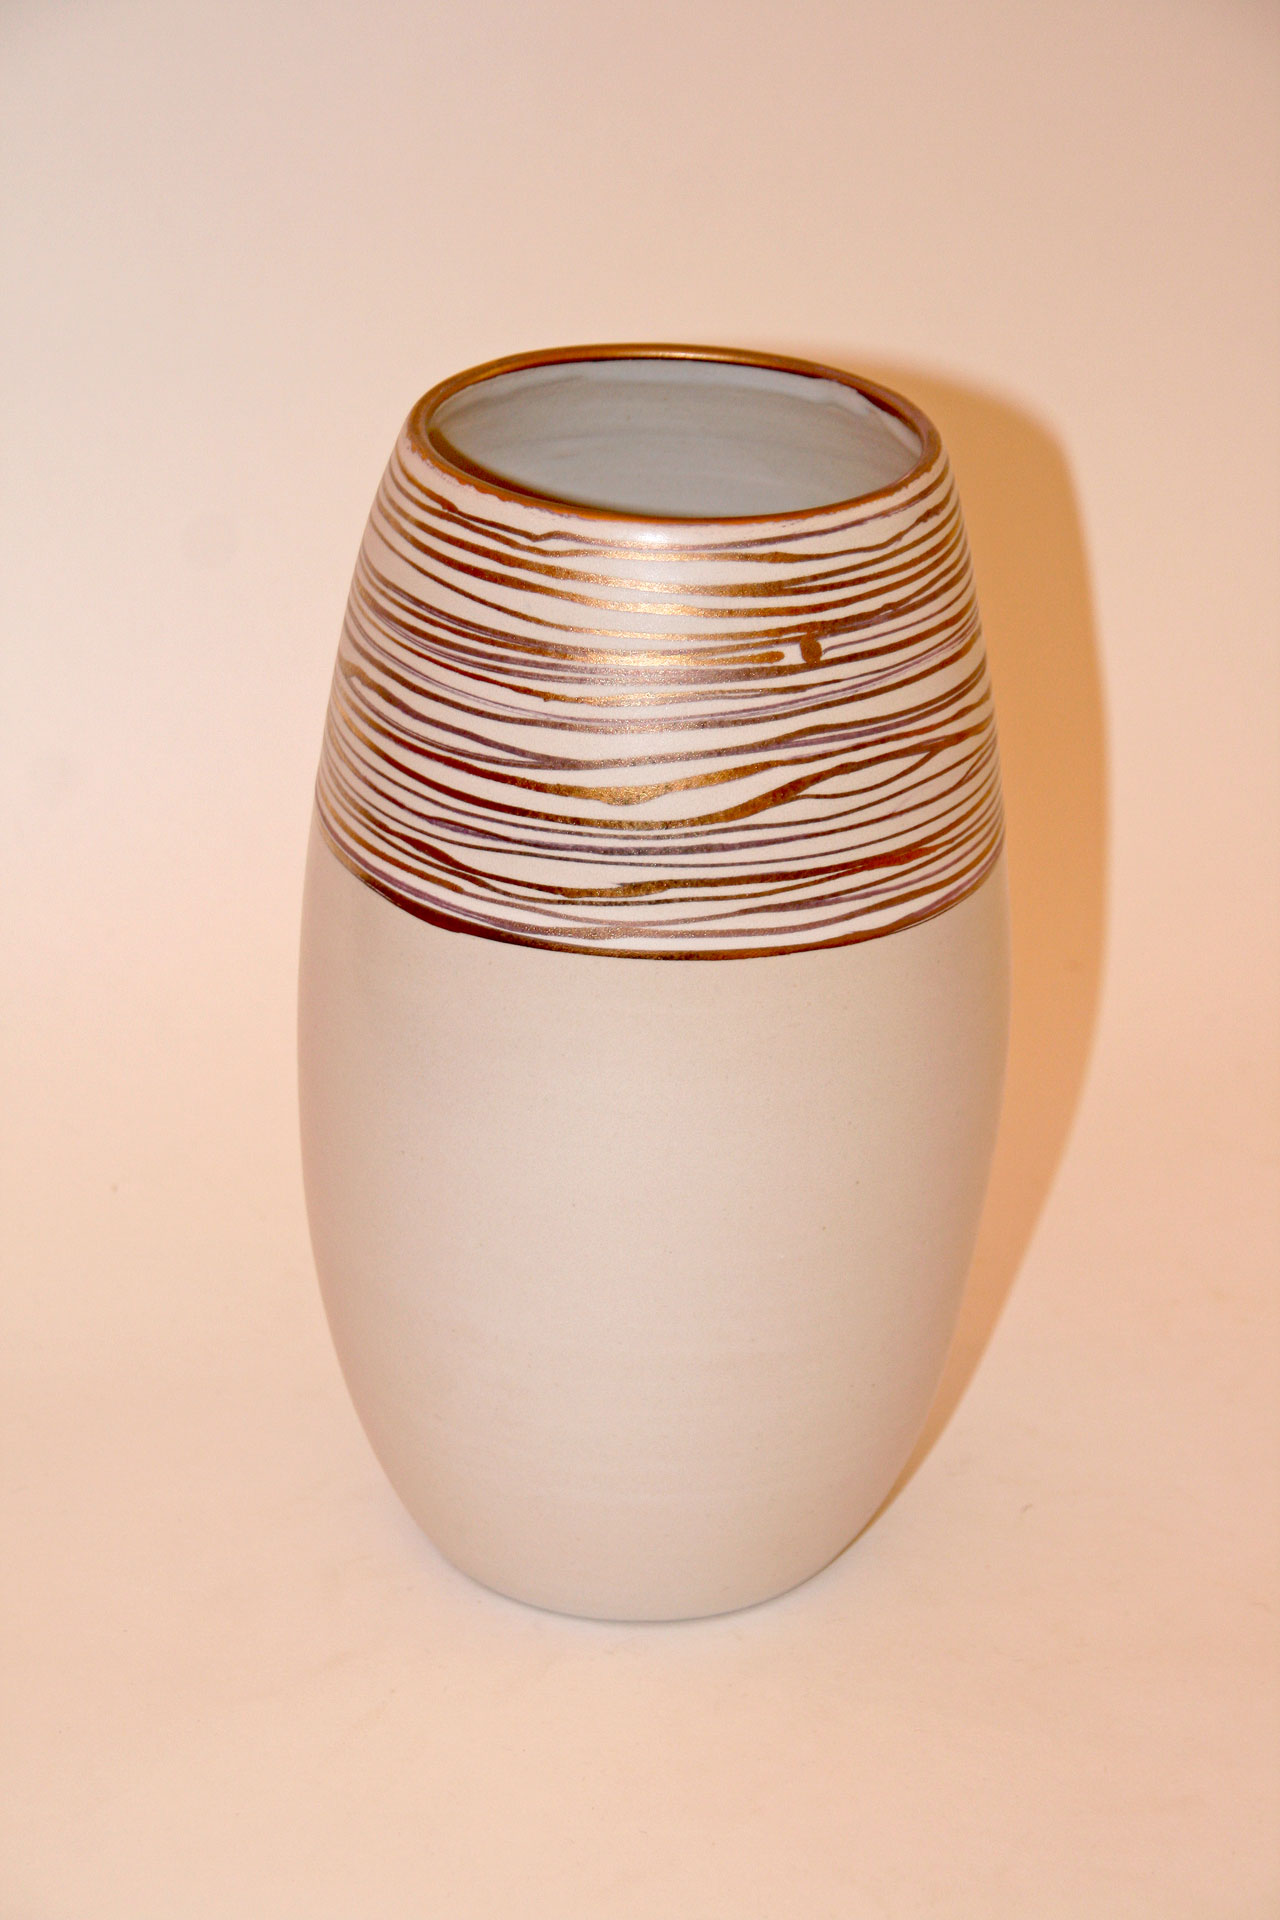 weissgold_vase_oval_solo-01